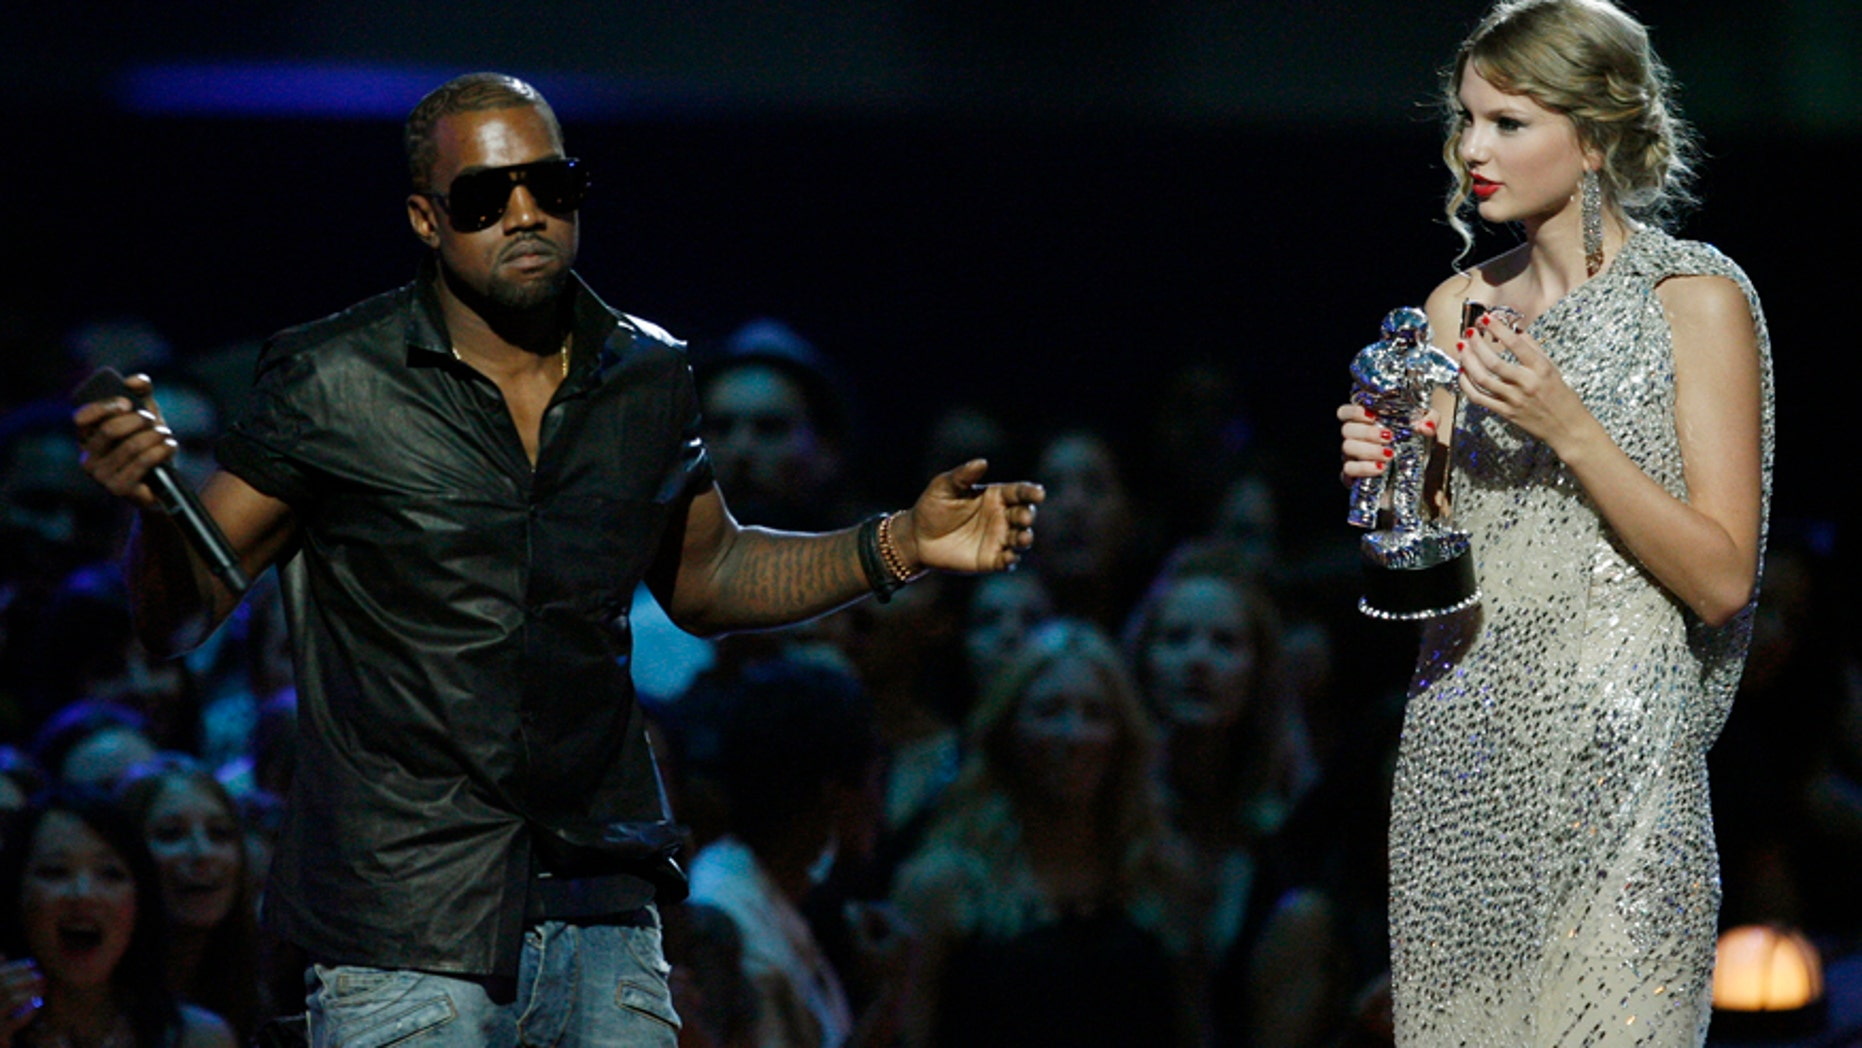 """In this Sept. 13, 2009 file photo, singer Kanye West takes the microphone from singer Taylor Swift as she accepts the """"Best Female Video"""" award during the MTV Video Music Awards in New York. West ranted about how Beyonce was more deserving of the award."""